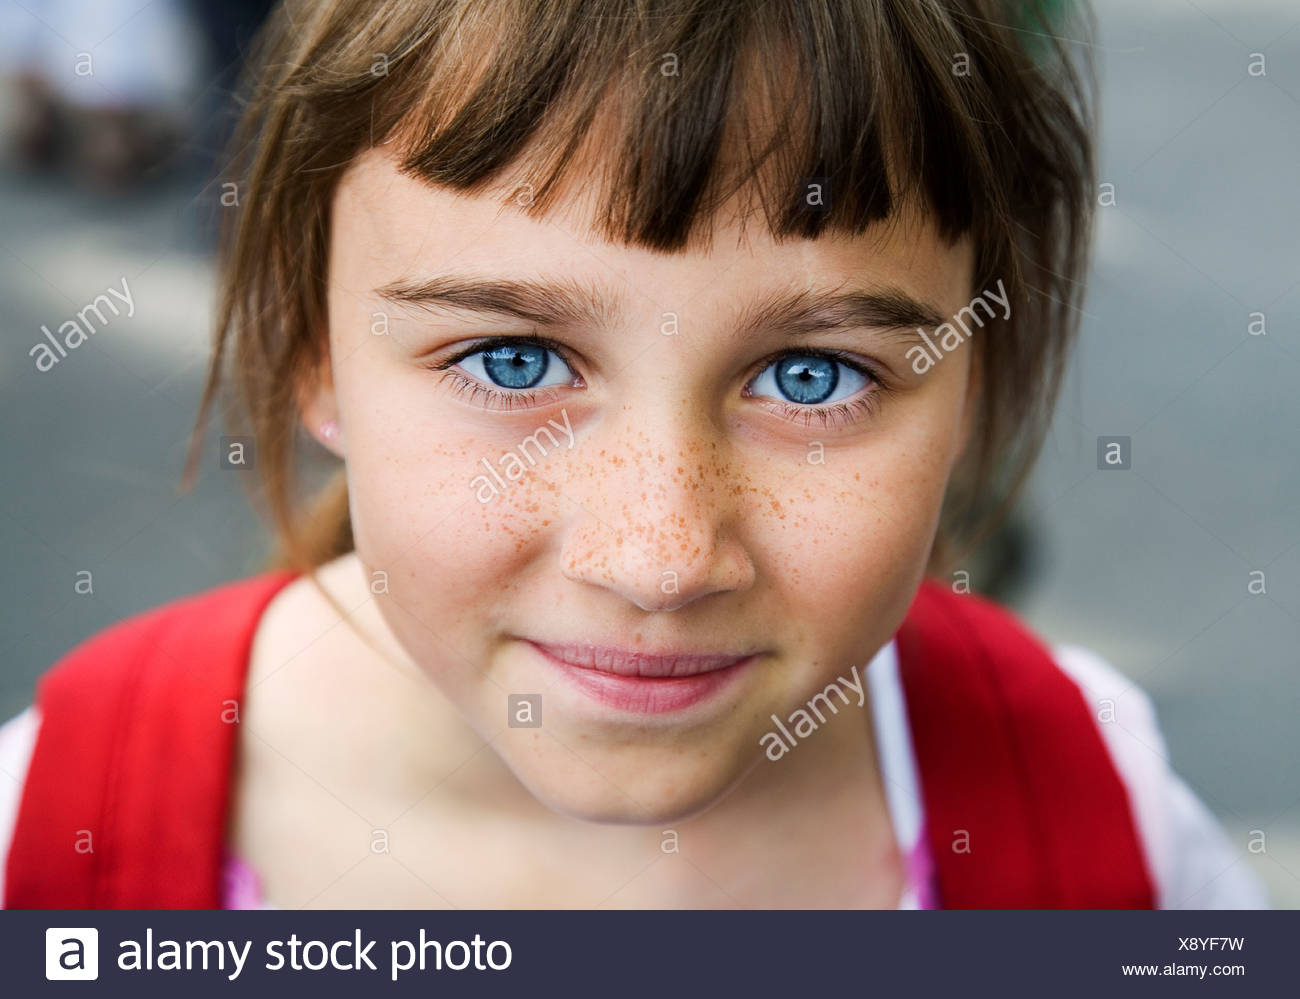 Portrait of a girl with big blue eyes and freckles, Sweden. - Stock Image